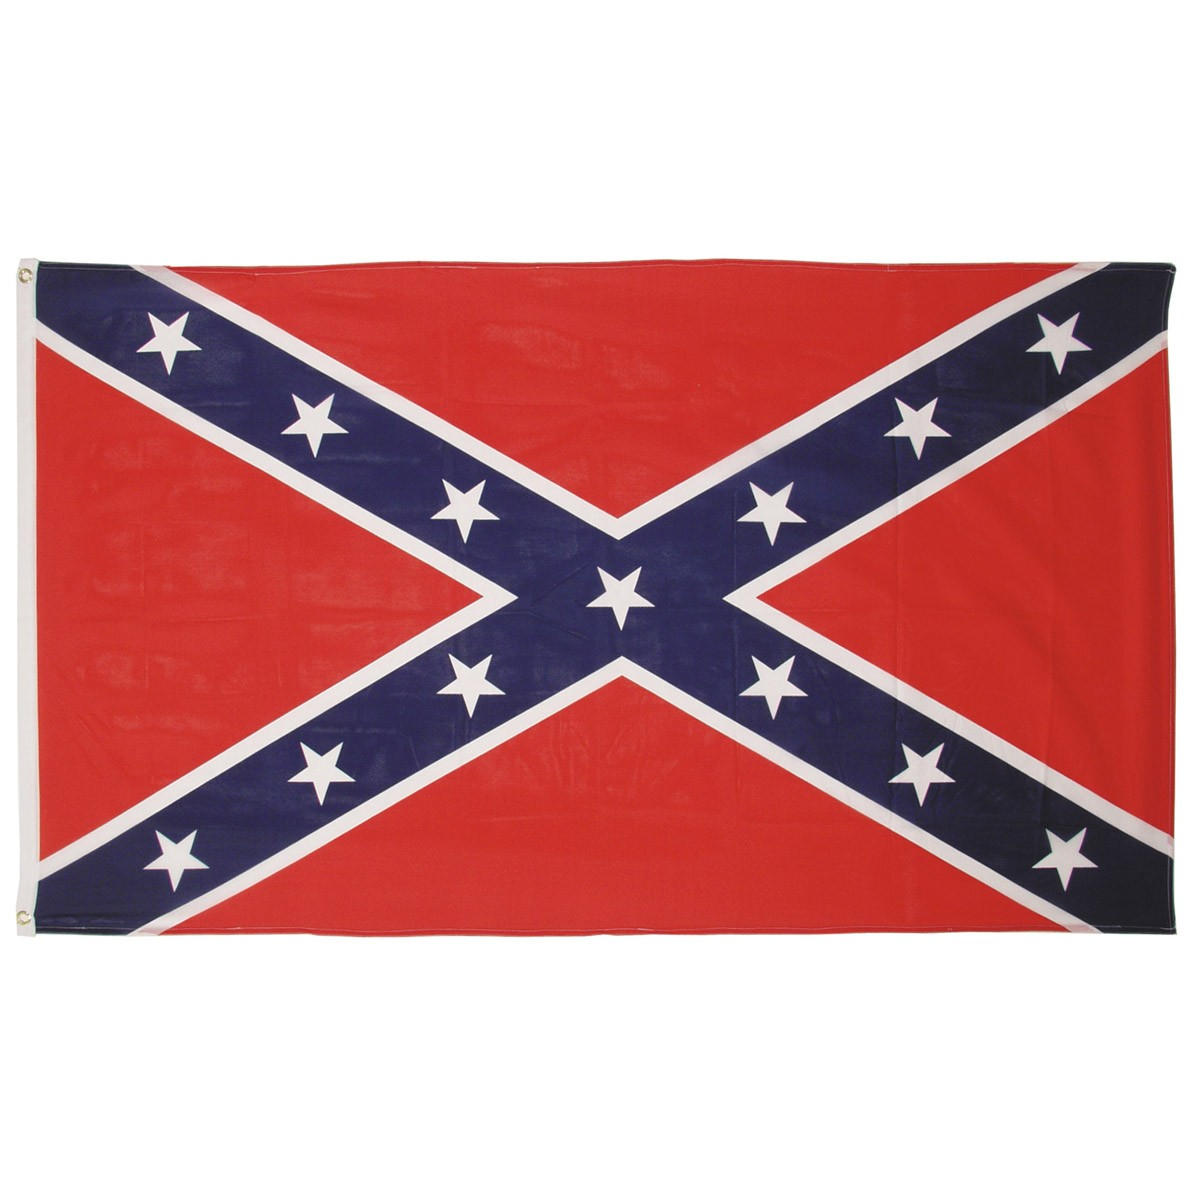 Confederate / South Cross Flag - 90x150cm w/ Reinforcement Band and Metal Hooks